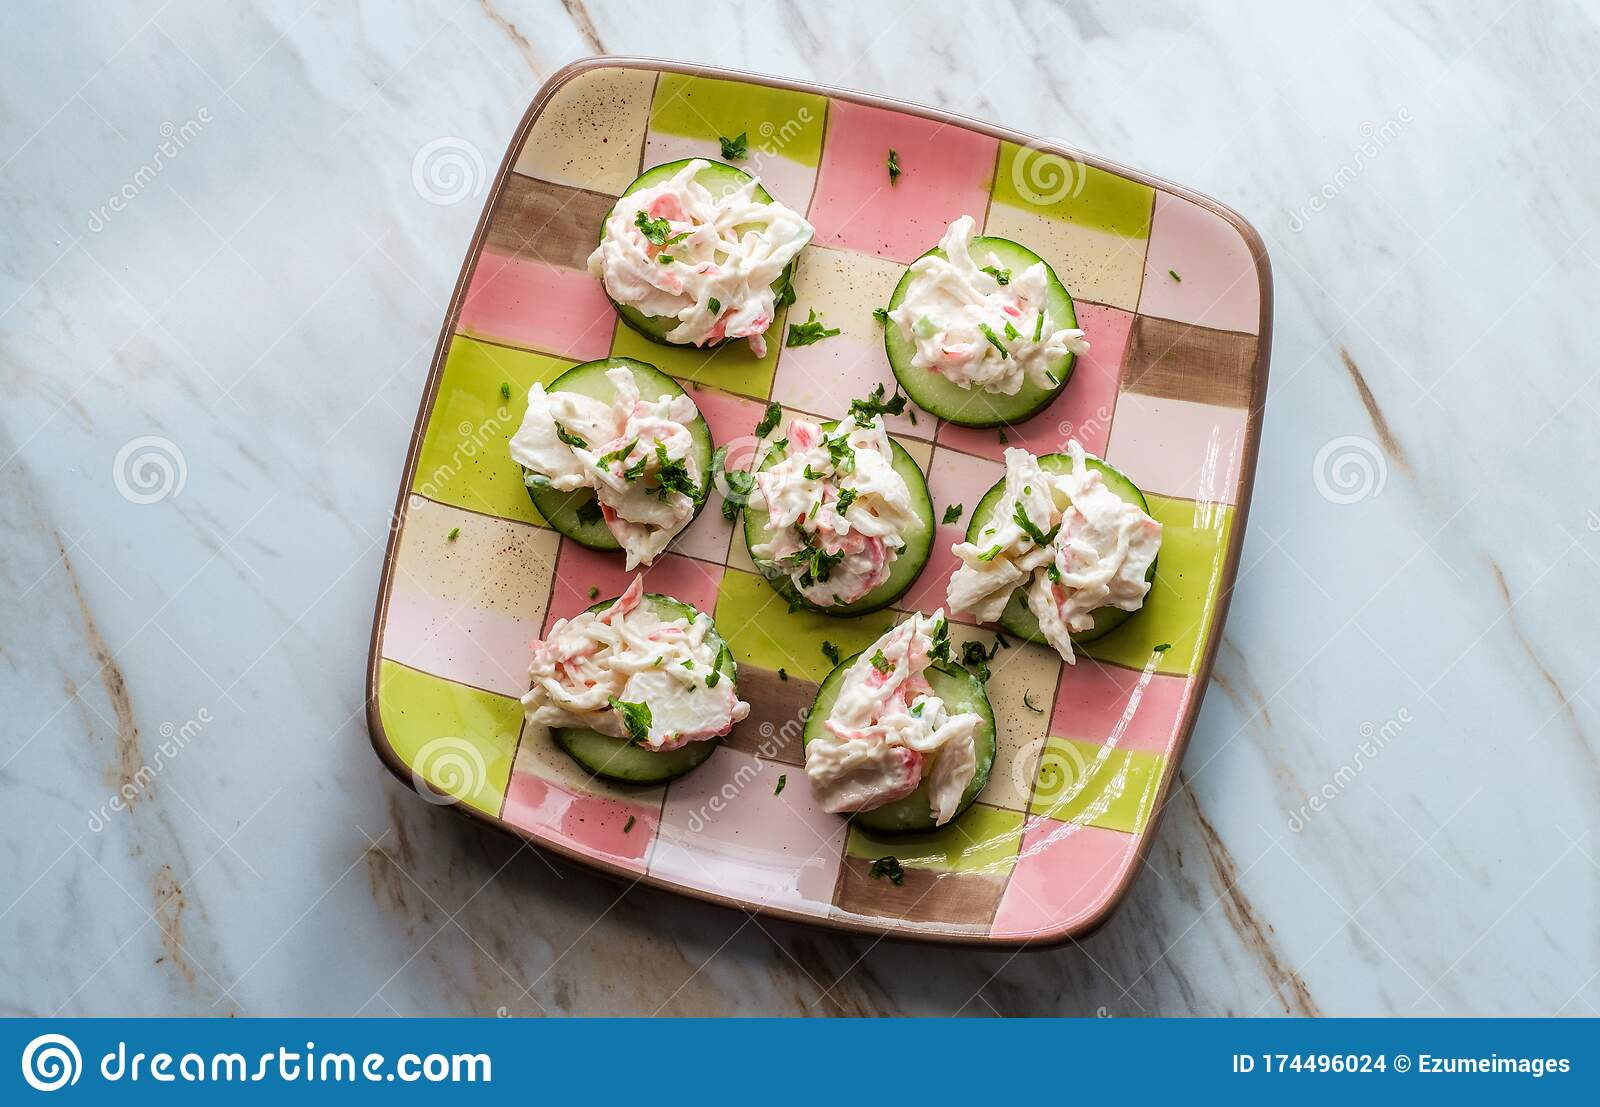 Seafood Salad Cucumber Slices Stock Photo Image Of Green Crab 174496024